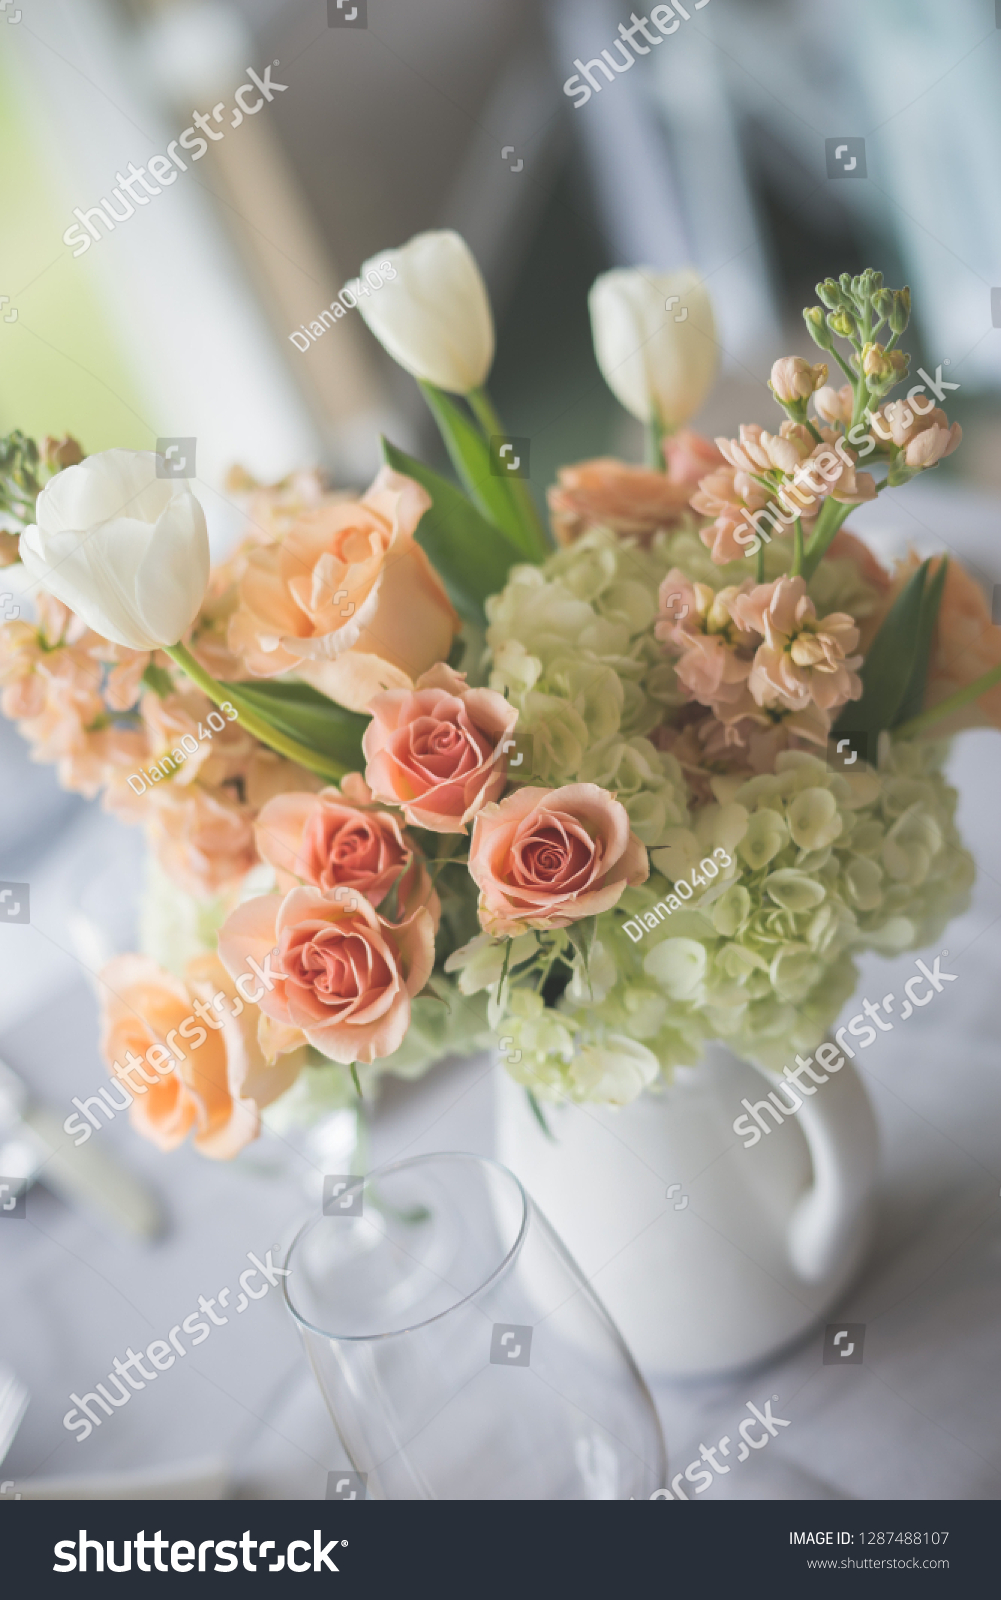 Beautiful Peach White Green Flower Arrangements Stock Photo Edit Now 1287488107